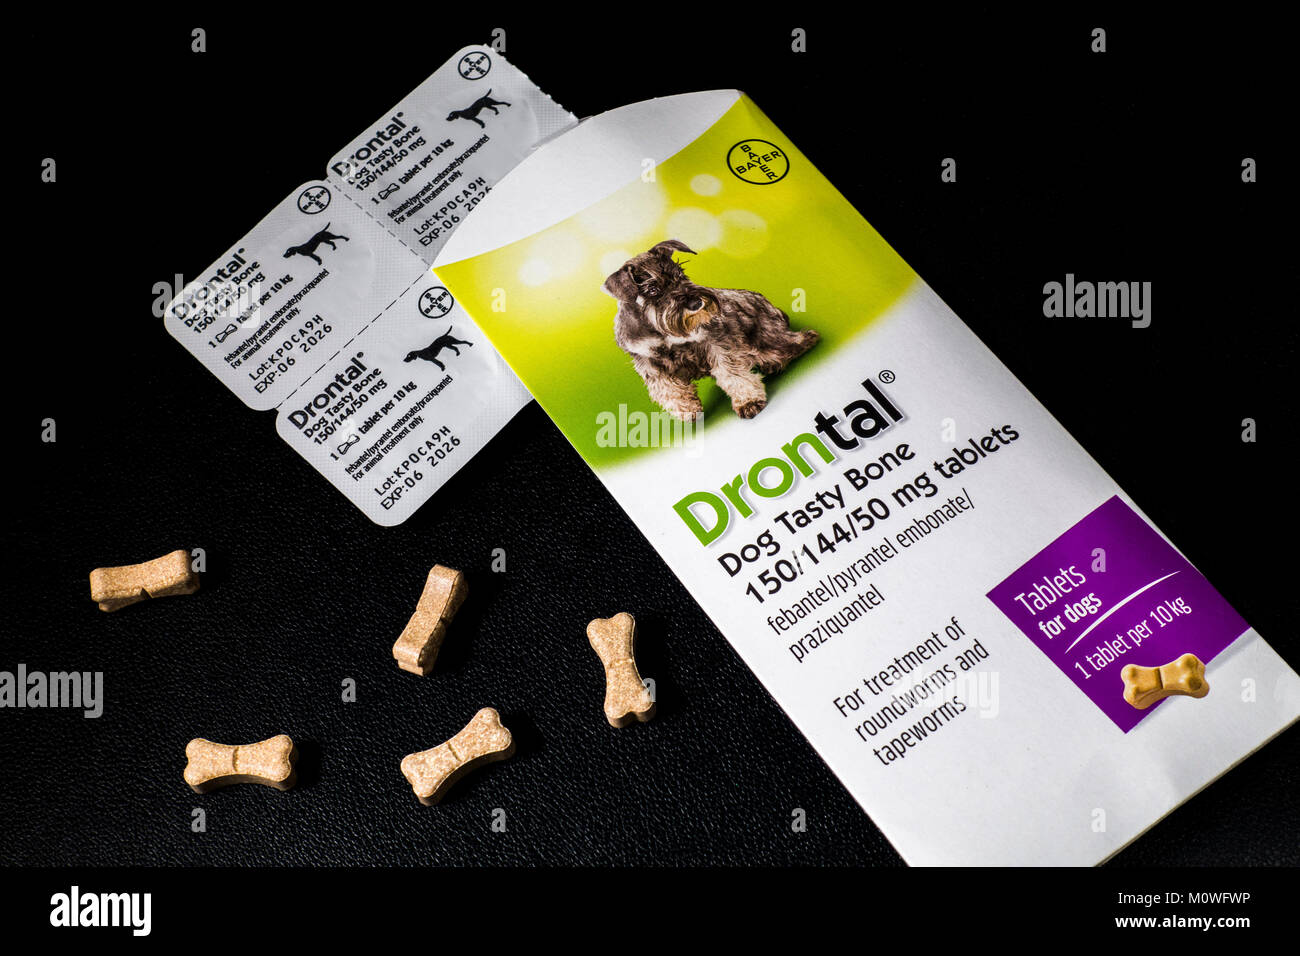 Drontal 'Dog Tasty Bone' tablets by Bayer. To treat the most common types of worms in dogs, including roundworms, - Stock Image